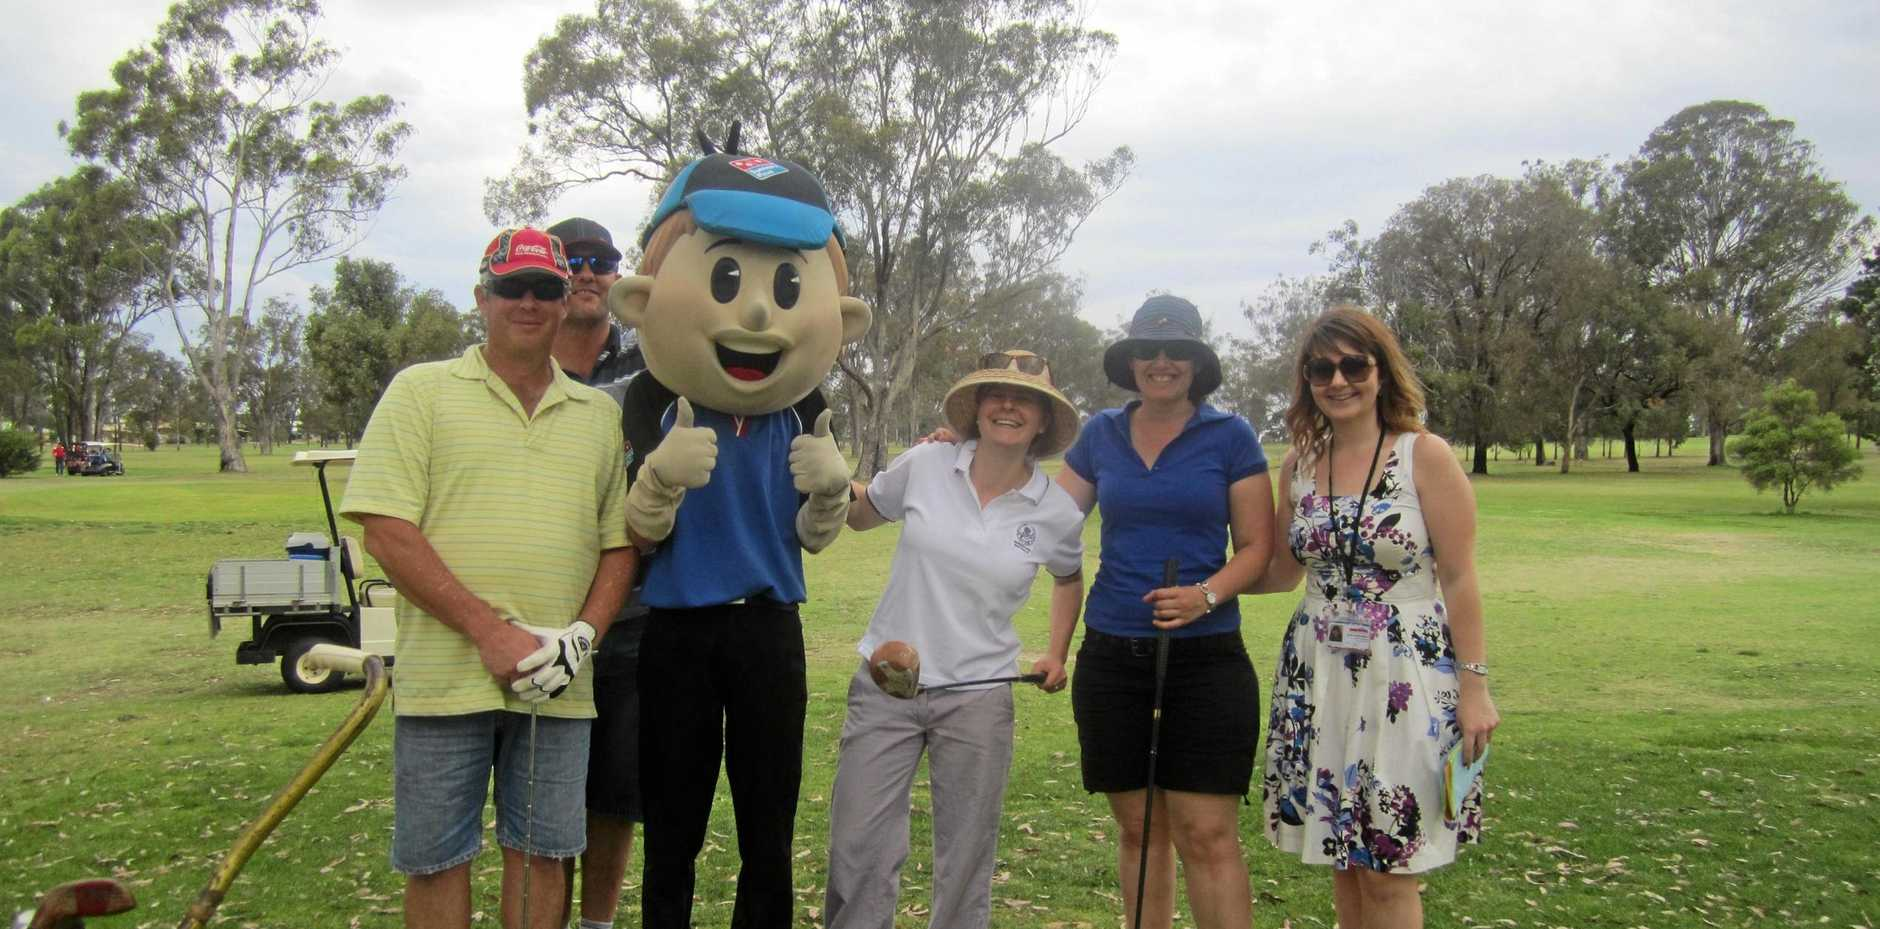 FUN DAY: The BUSHkids charity golf day is on today at the Emerald Golf Club.